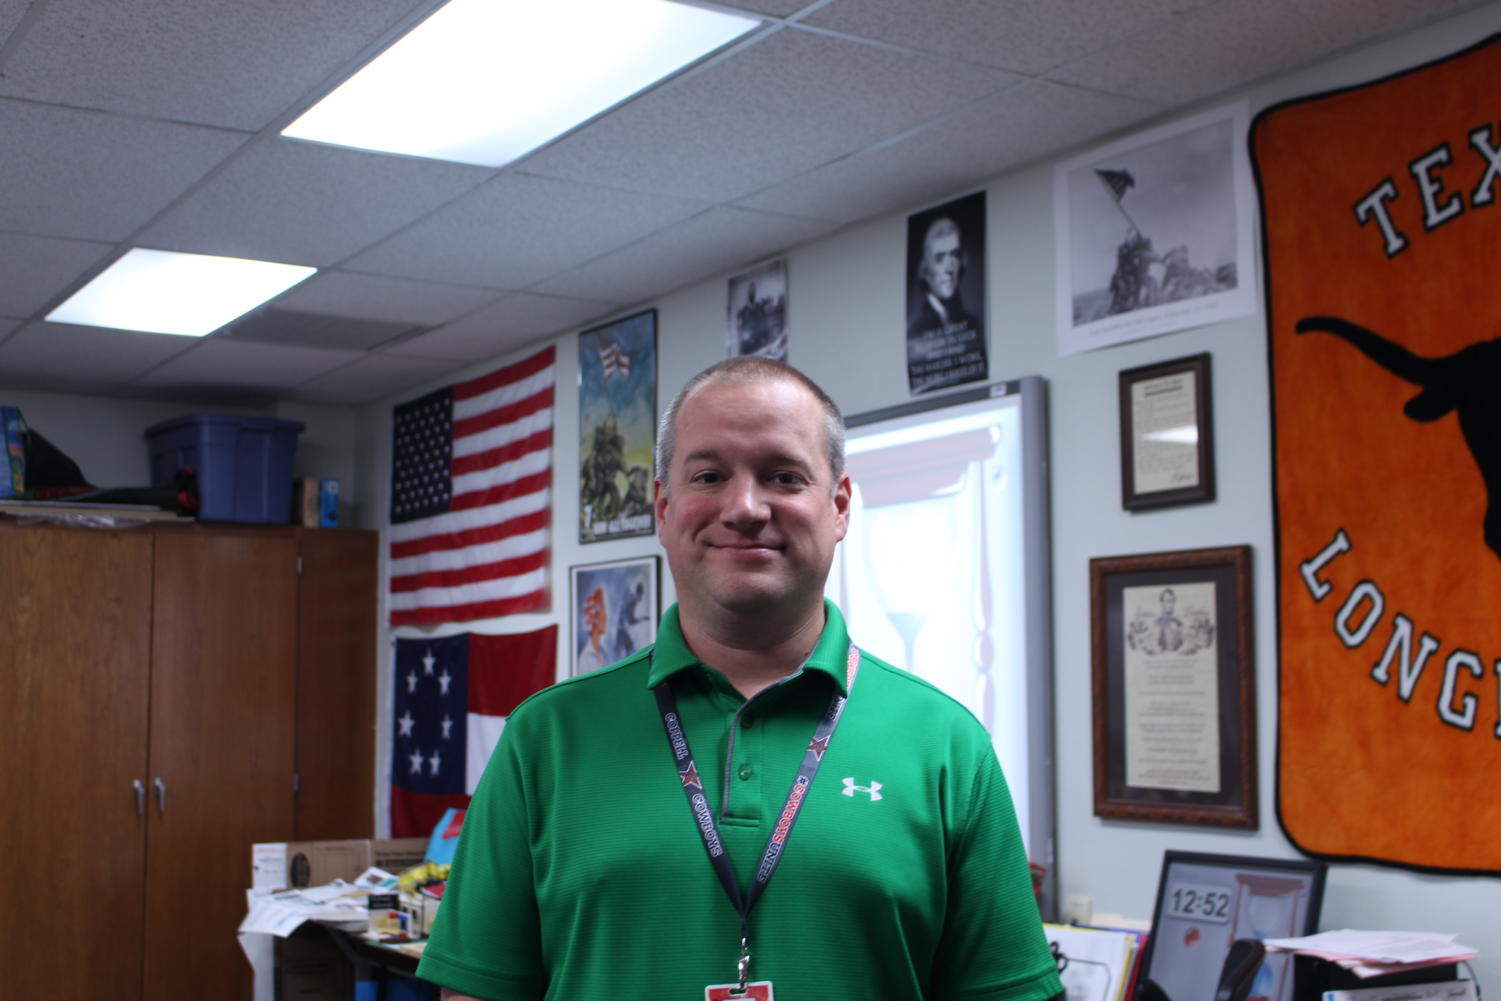 AP United States History teacher Scott Shelby is the December Sidekick Teacher of the Issue. During Shelby's class, he shares his many interactive experiences with his students to help them better understand concepts.